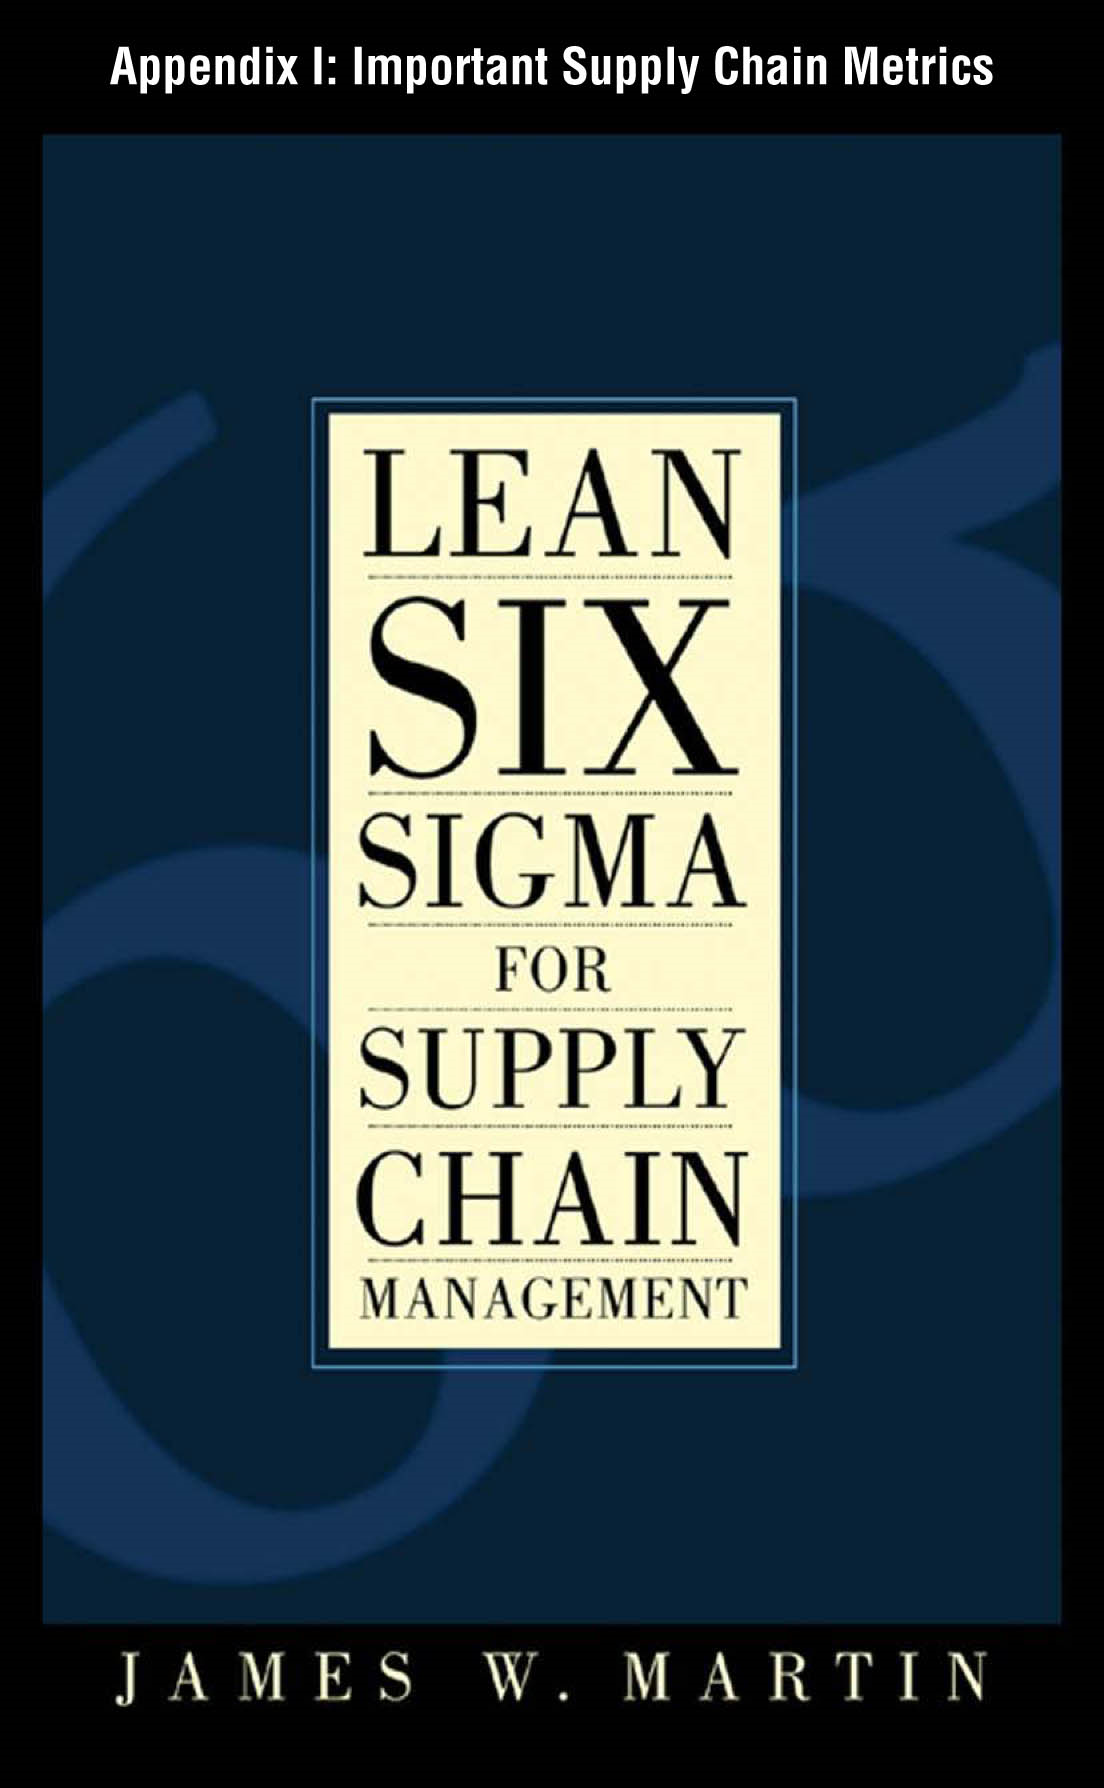 Lean Six Sigma for Supply Chain Management, Appendix I - Important Supply Chain Metrics By: James Martin